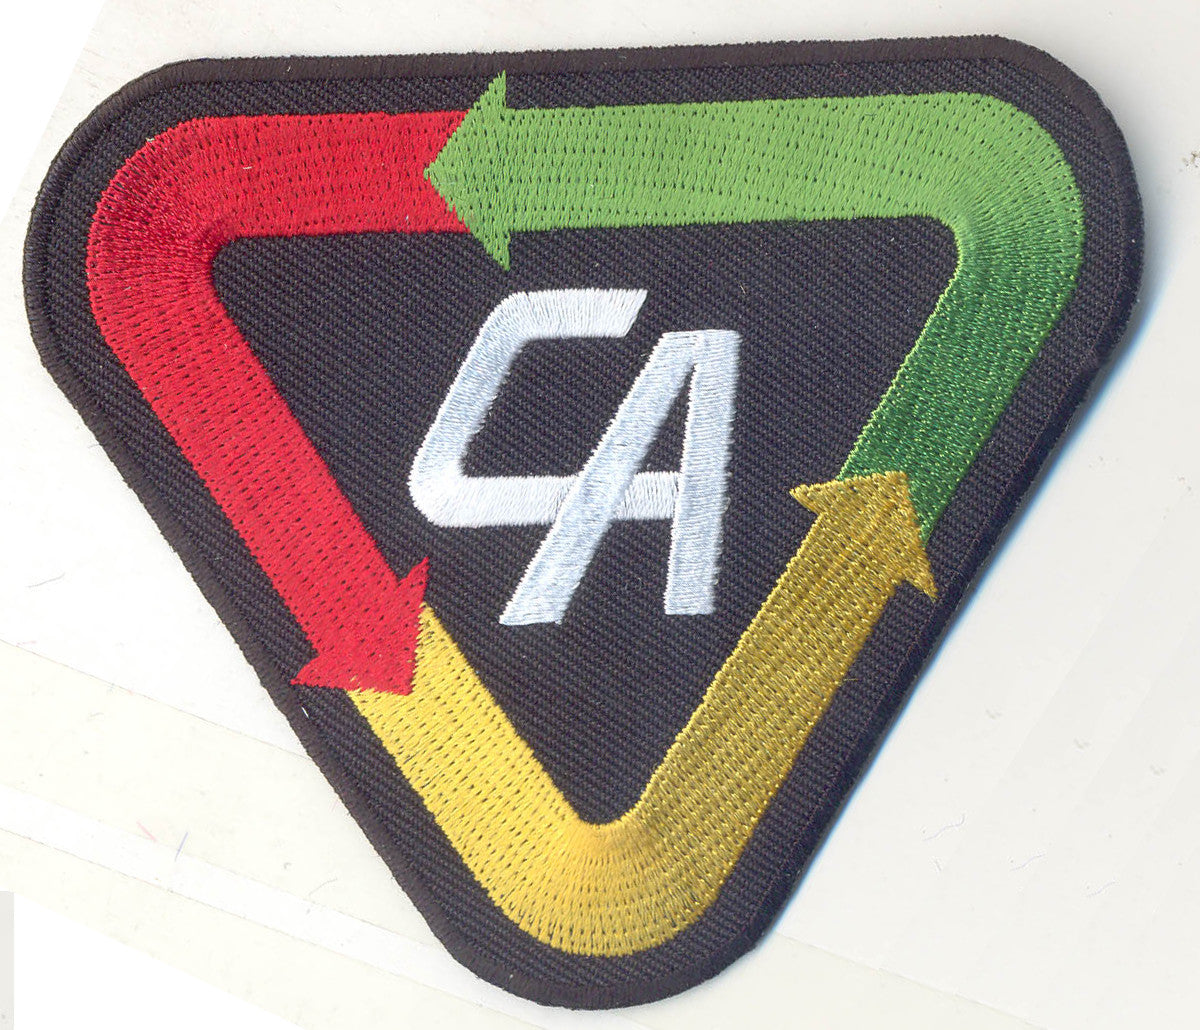 A390 Captain Action custom licensed patch full sized multi-colored plastic backed!